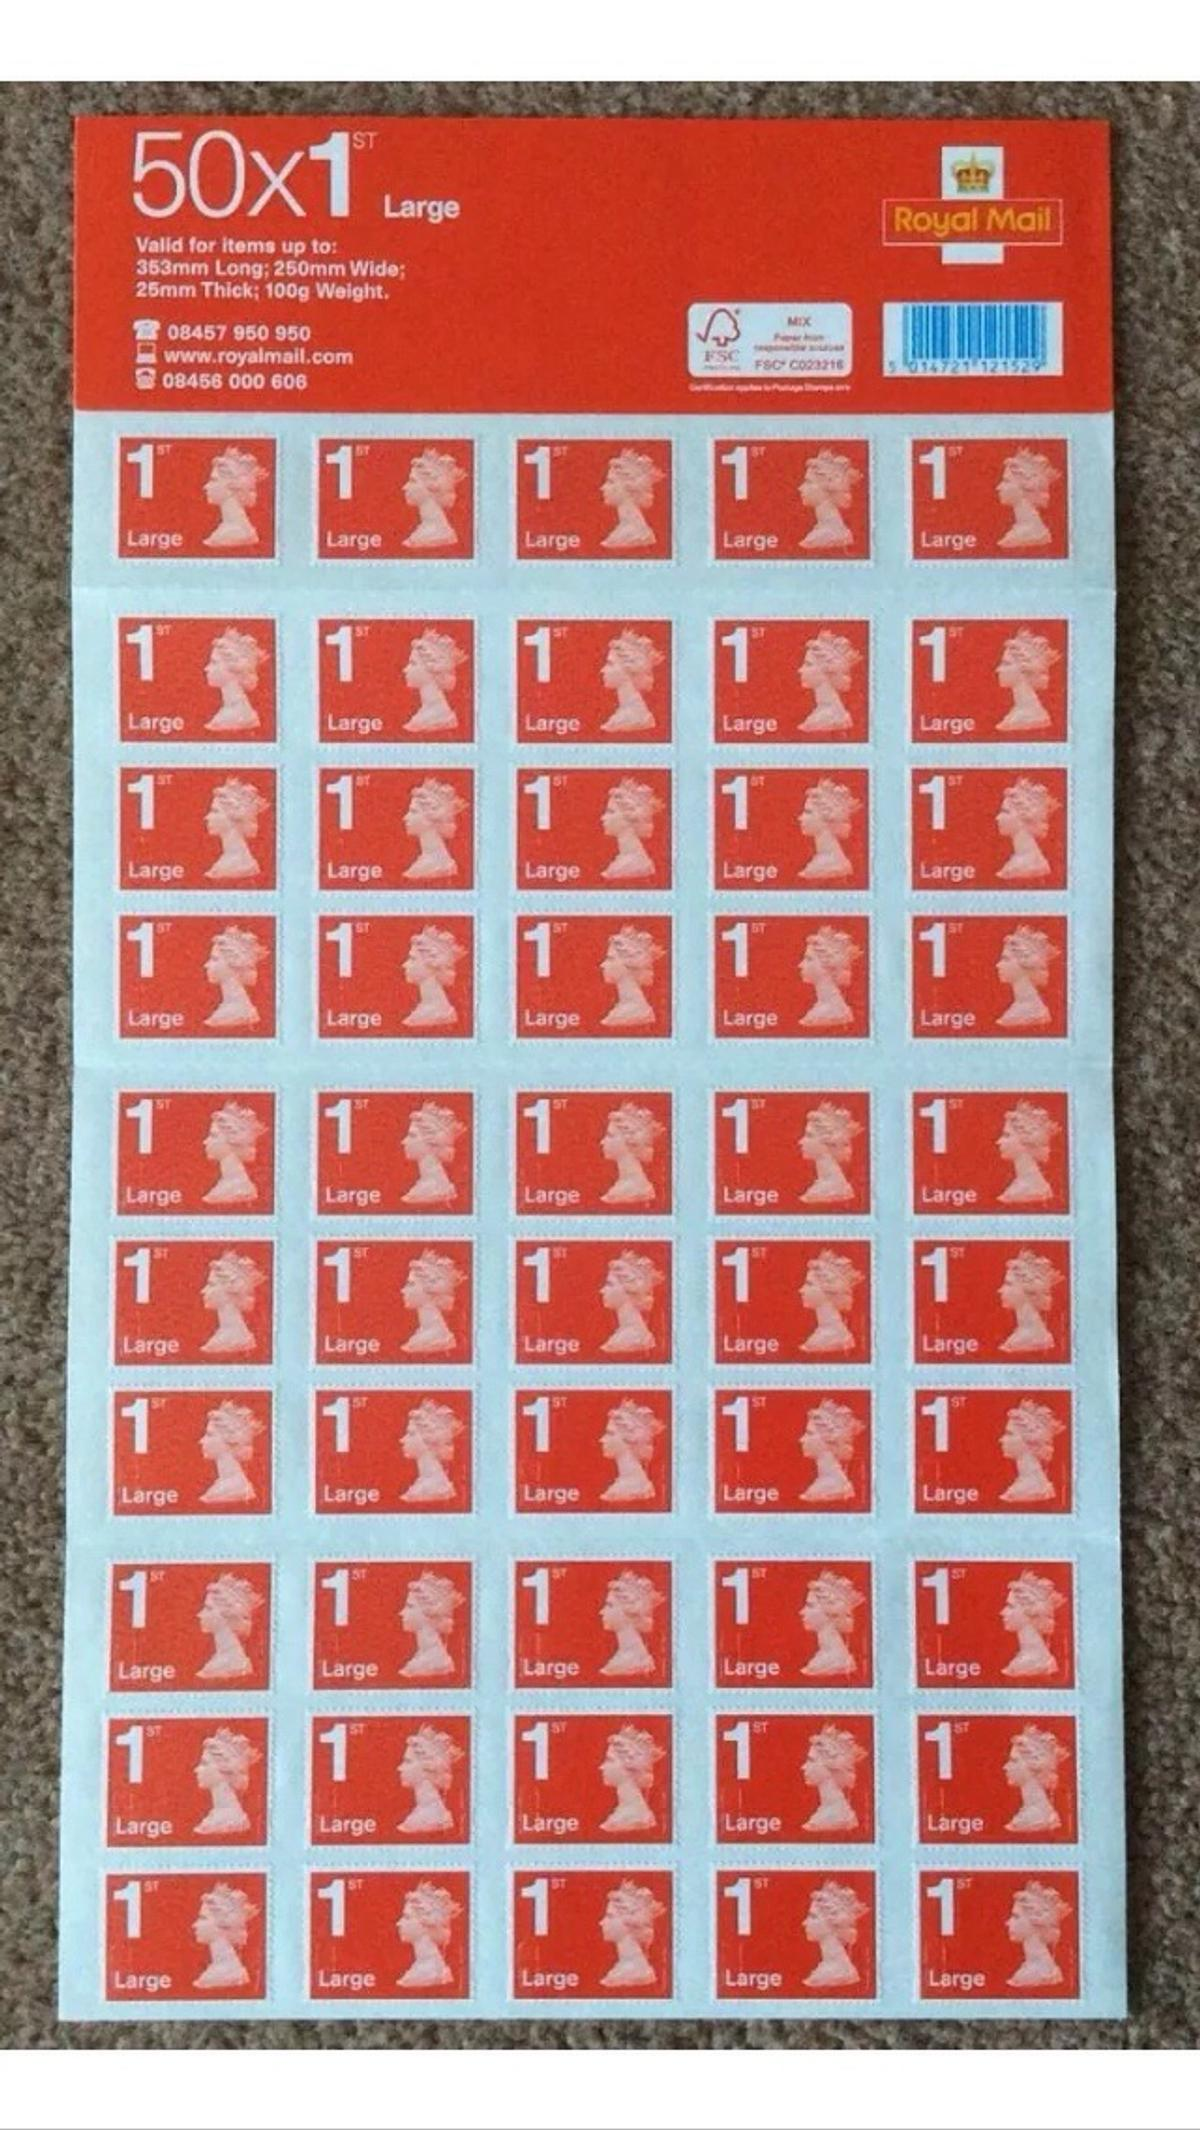 royal mail large letter first class stamp -50